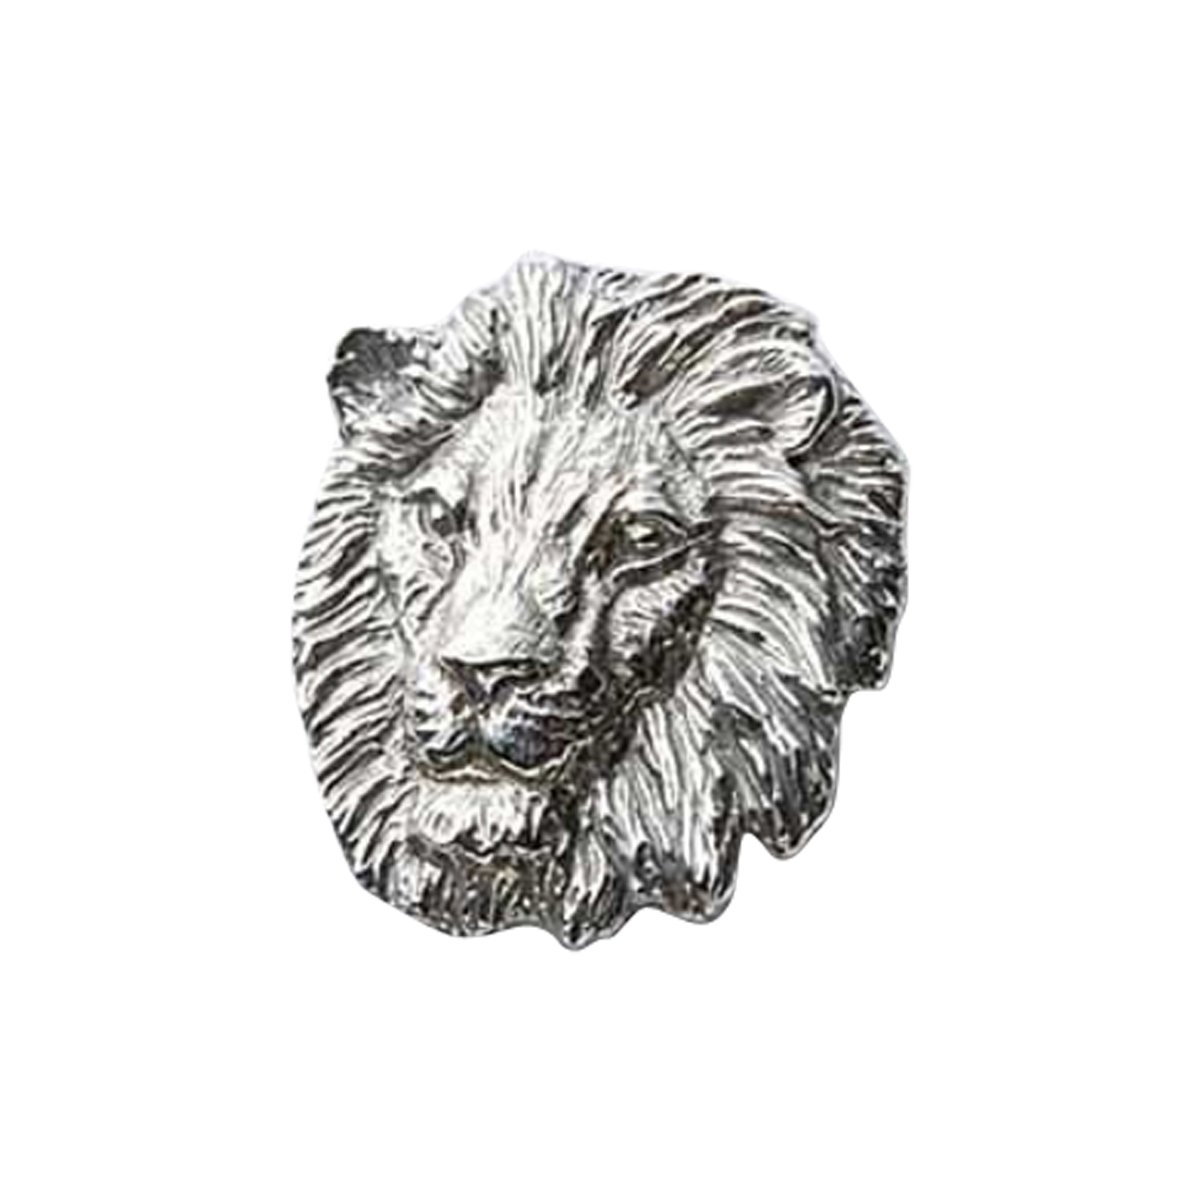 Creative Pewter Designs Pewter Lion, Handcrafted Lapel Pin Brooch, Pewter Finish, M102